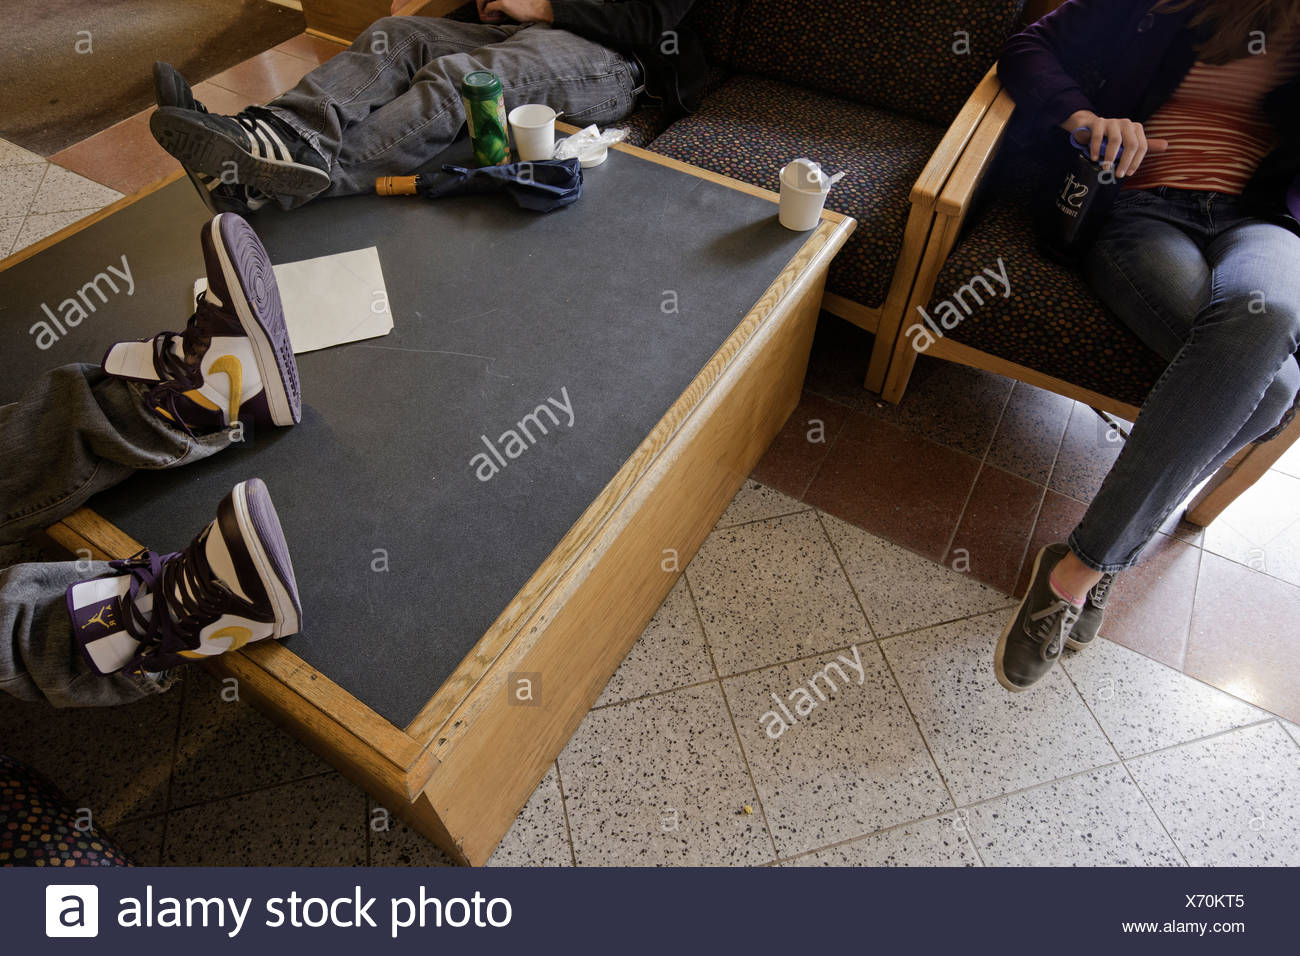 High school students in the commons area take a break at the Paideia School, Atlanta Georgia. - Stock Image